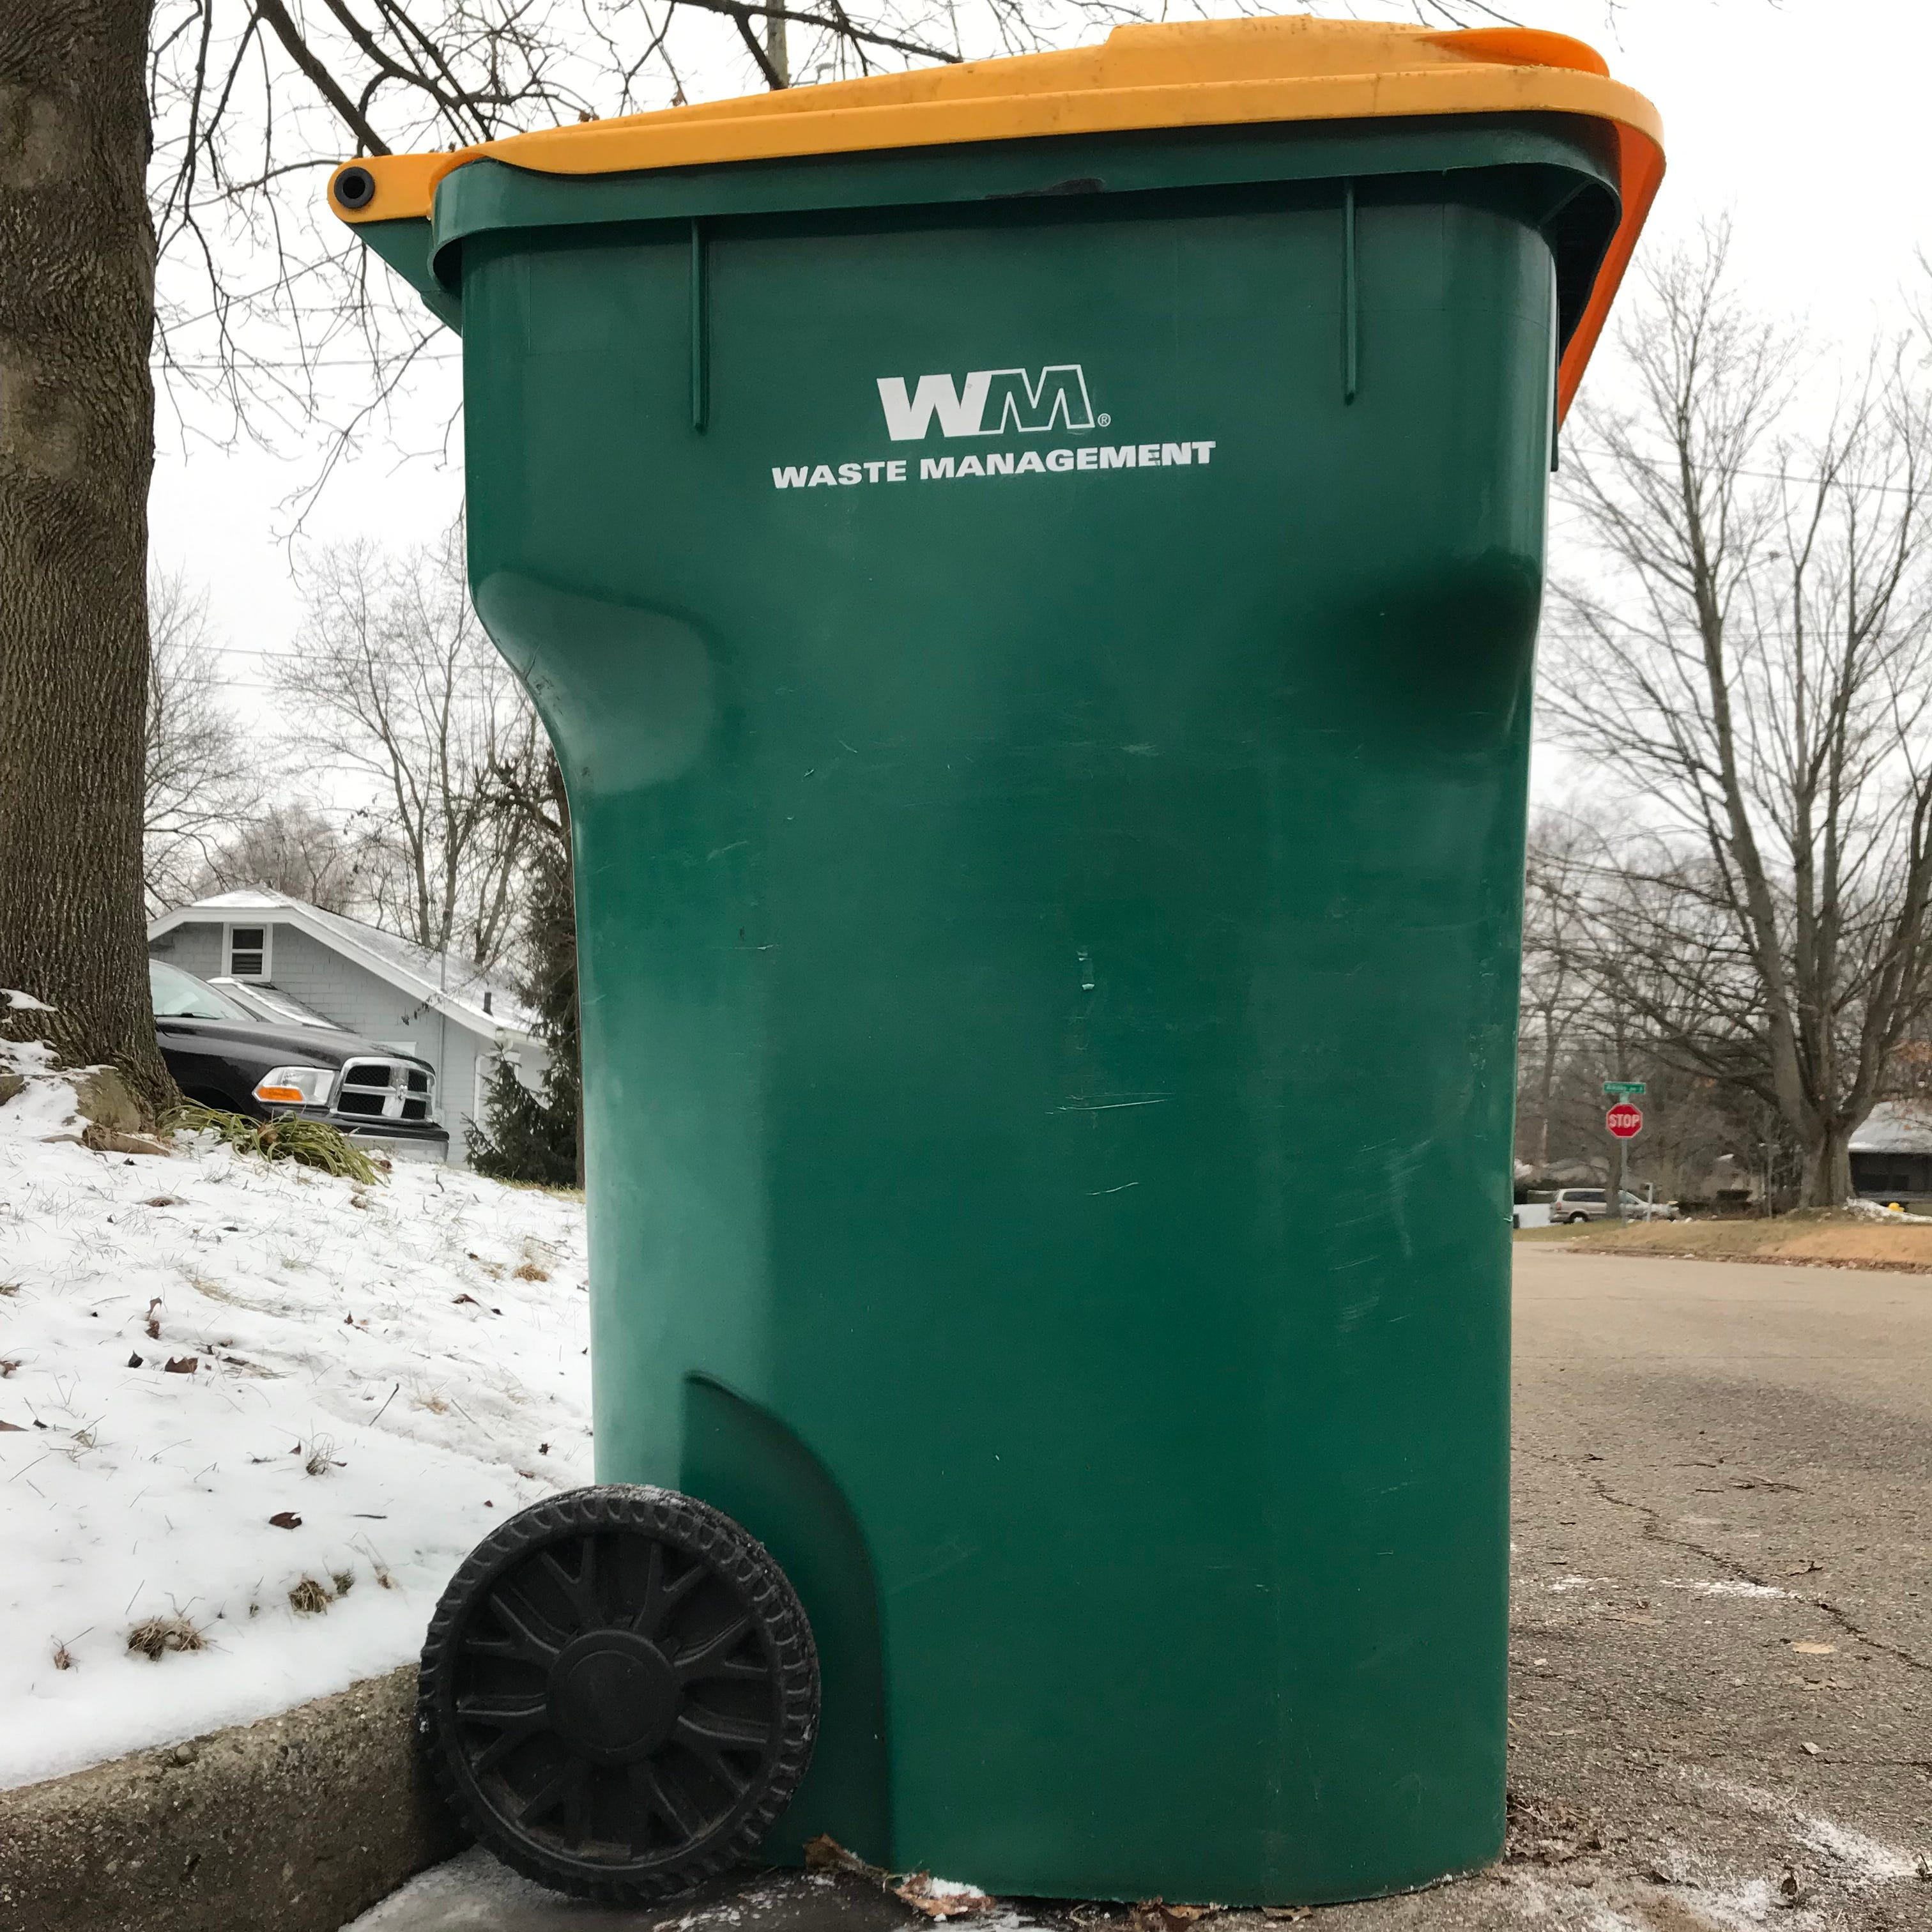 Battle Creek recycling schedule will change on May 6